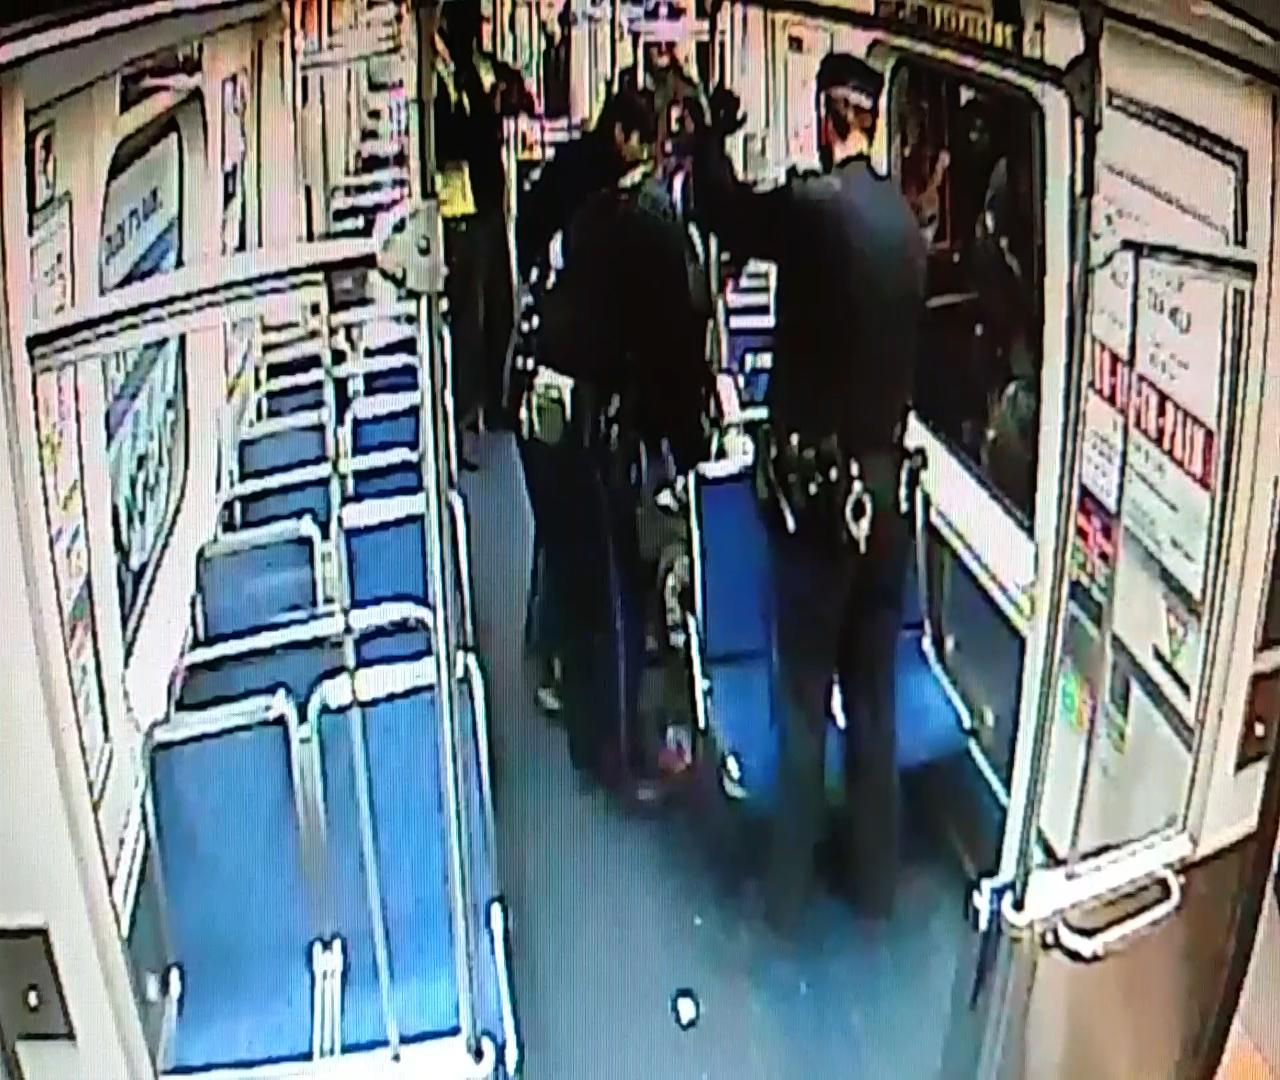 Transit officers help mother deliver baby on train